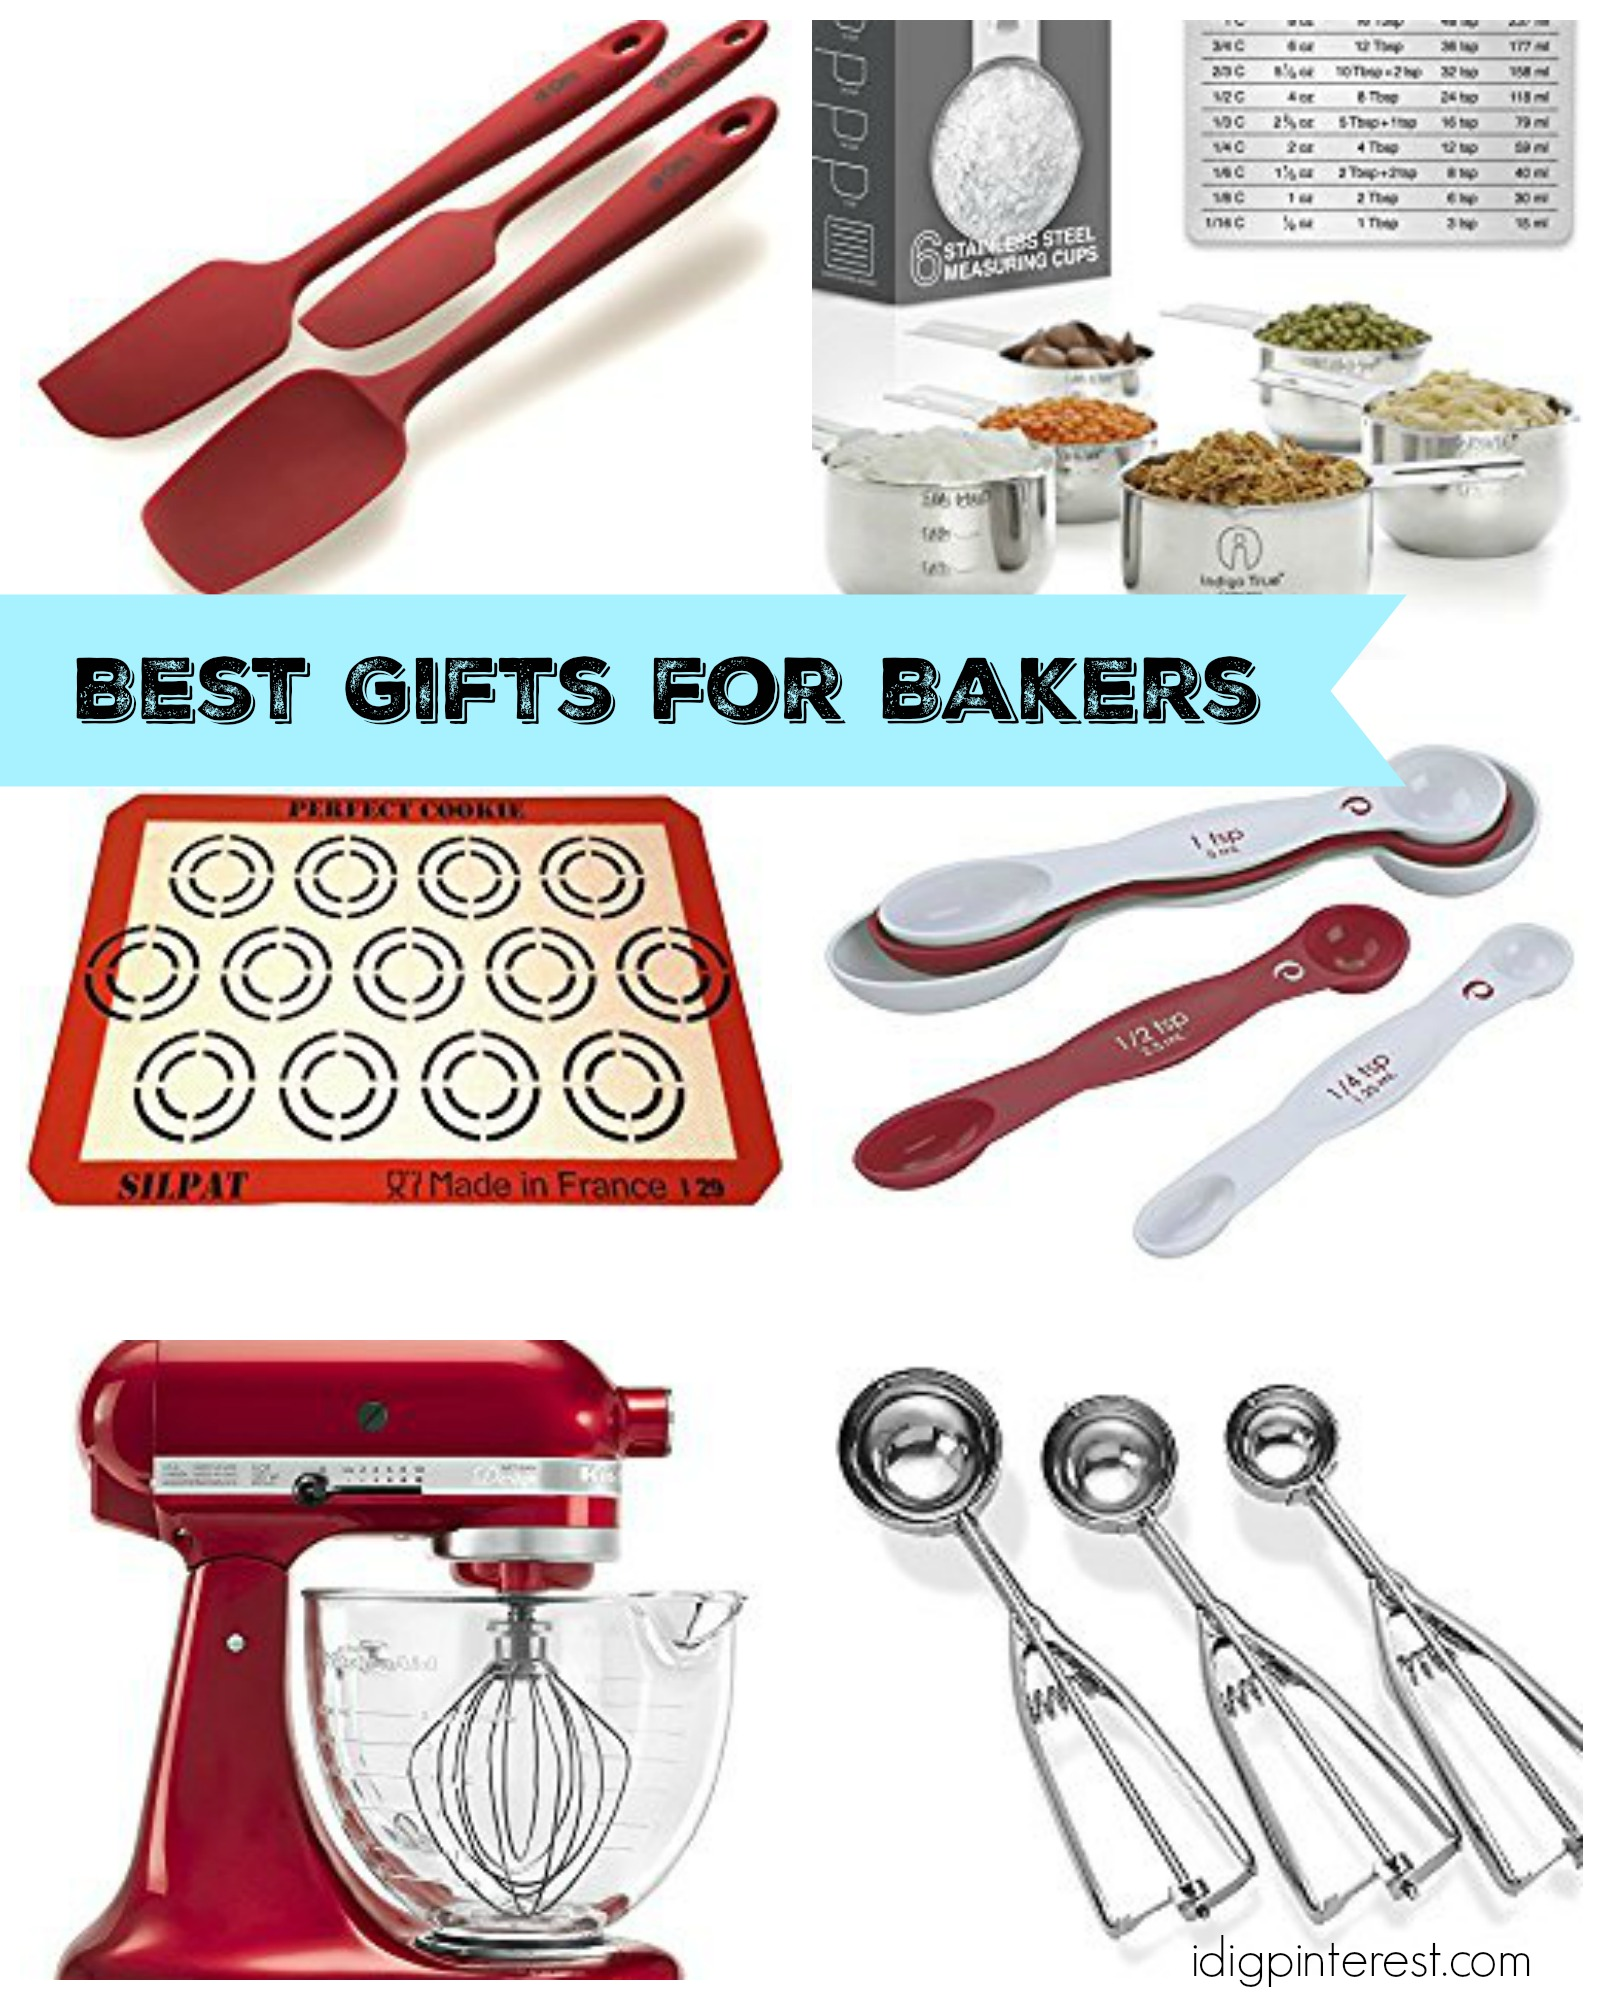 The Best Gifts For Bakers My Personal Favorite Kitchen